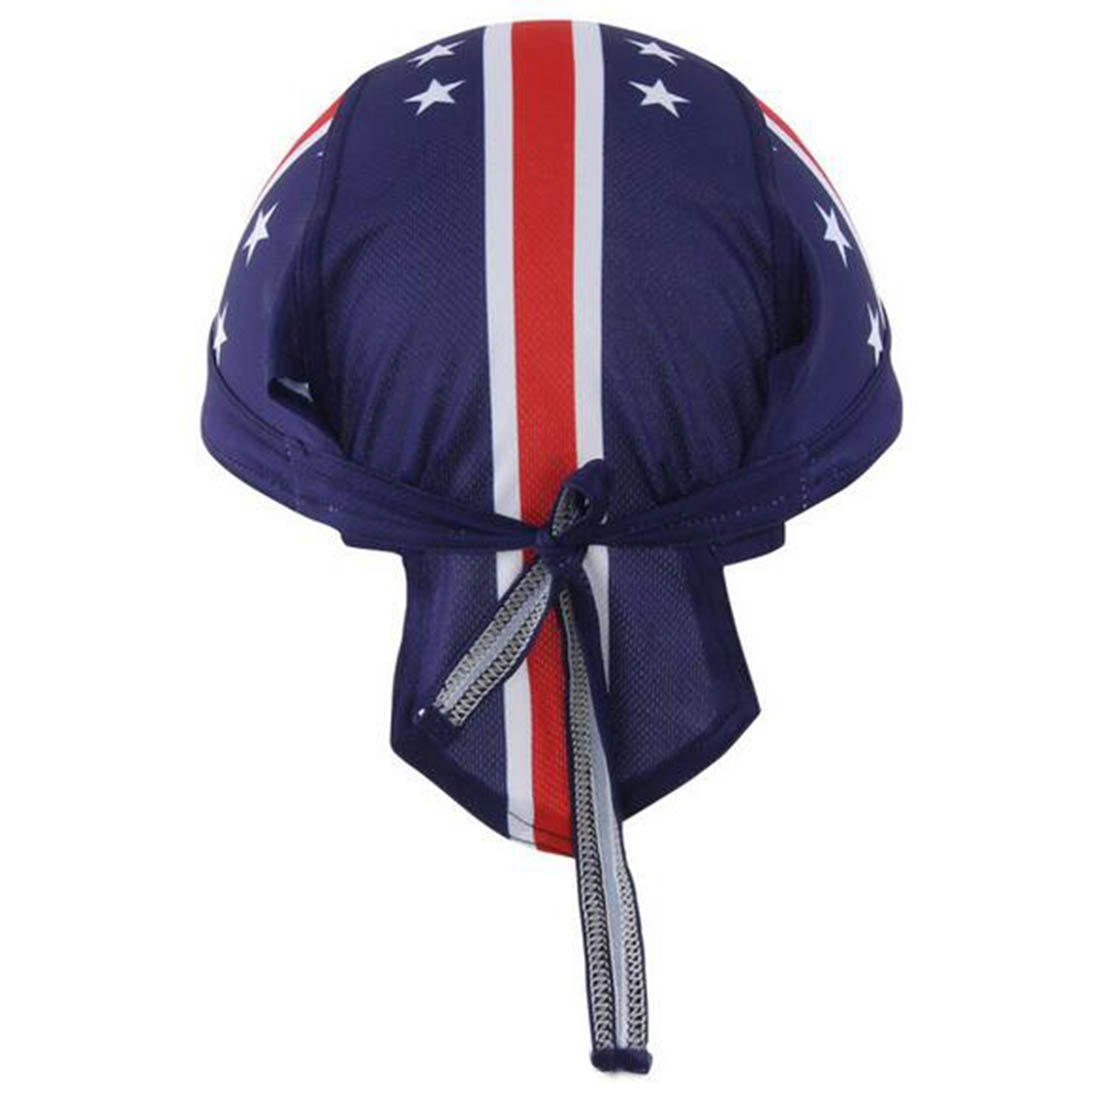 BIYINGEE Cycling Cap Scarf Fits Under Helmet